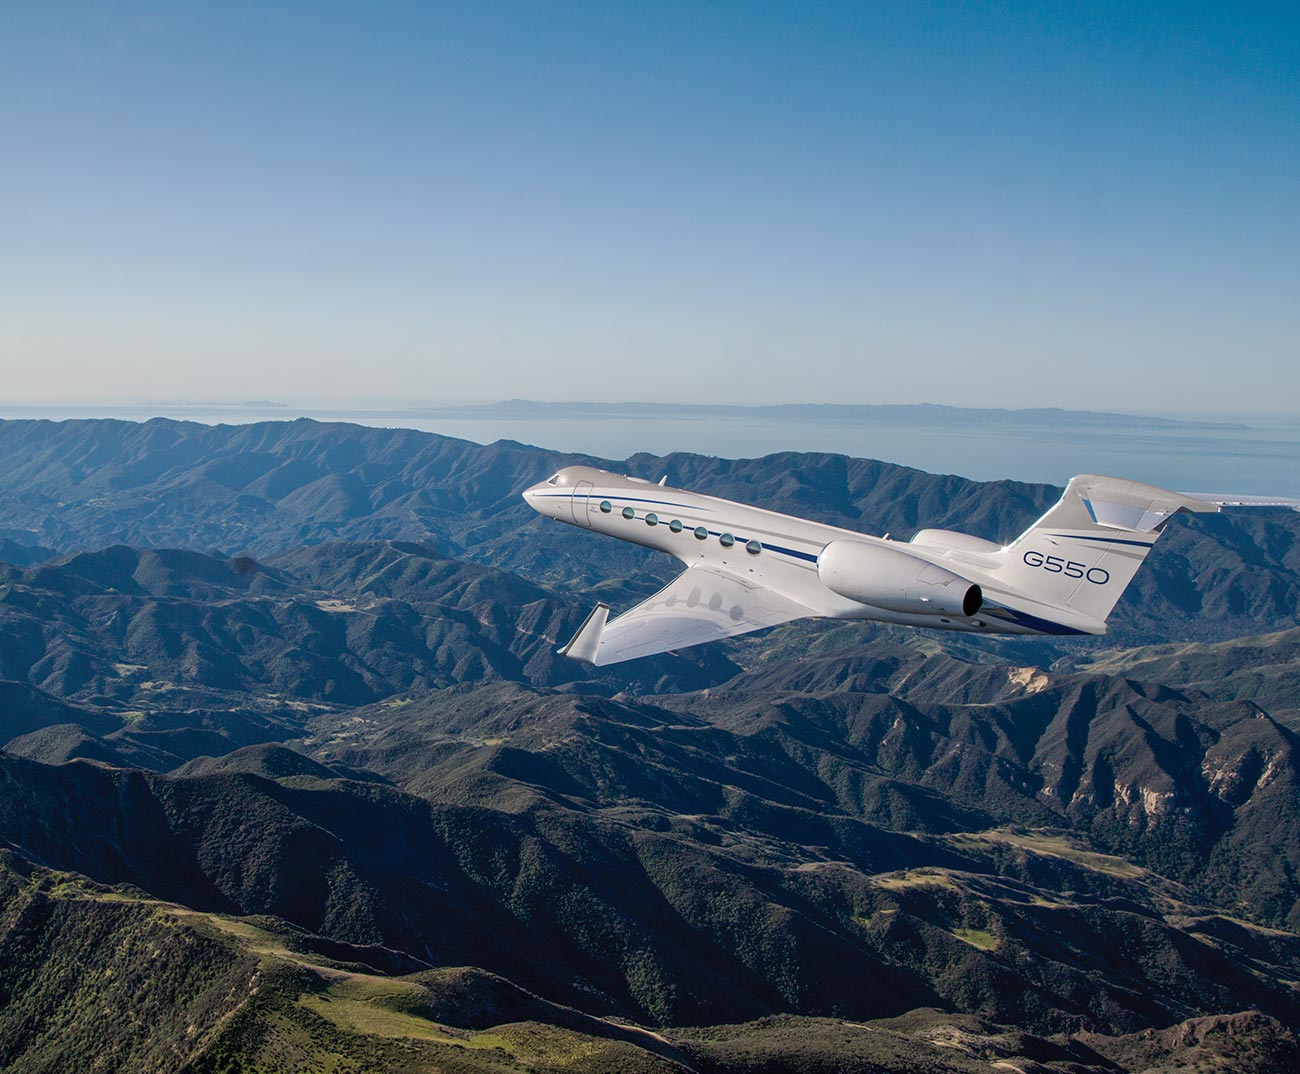 G550 flying over bumpy mountains